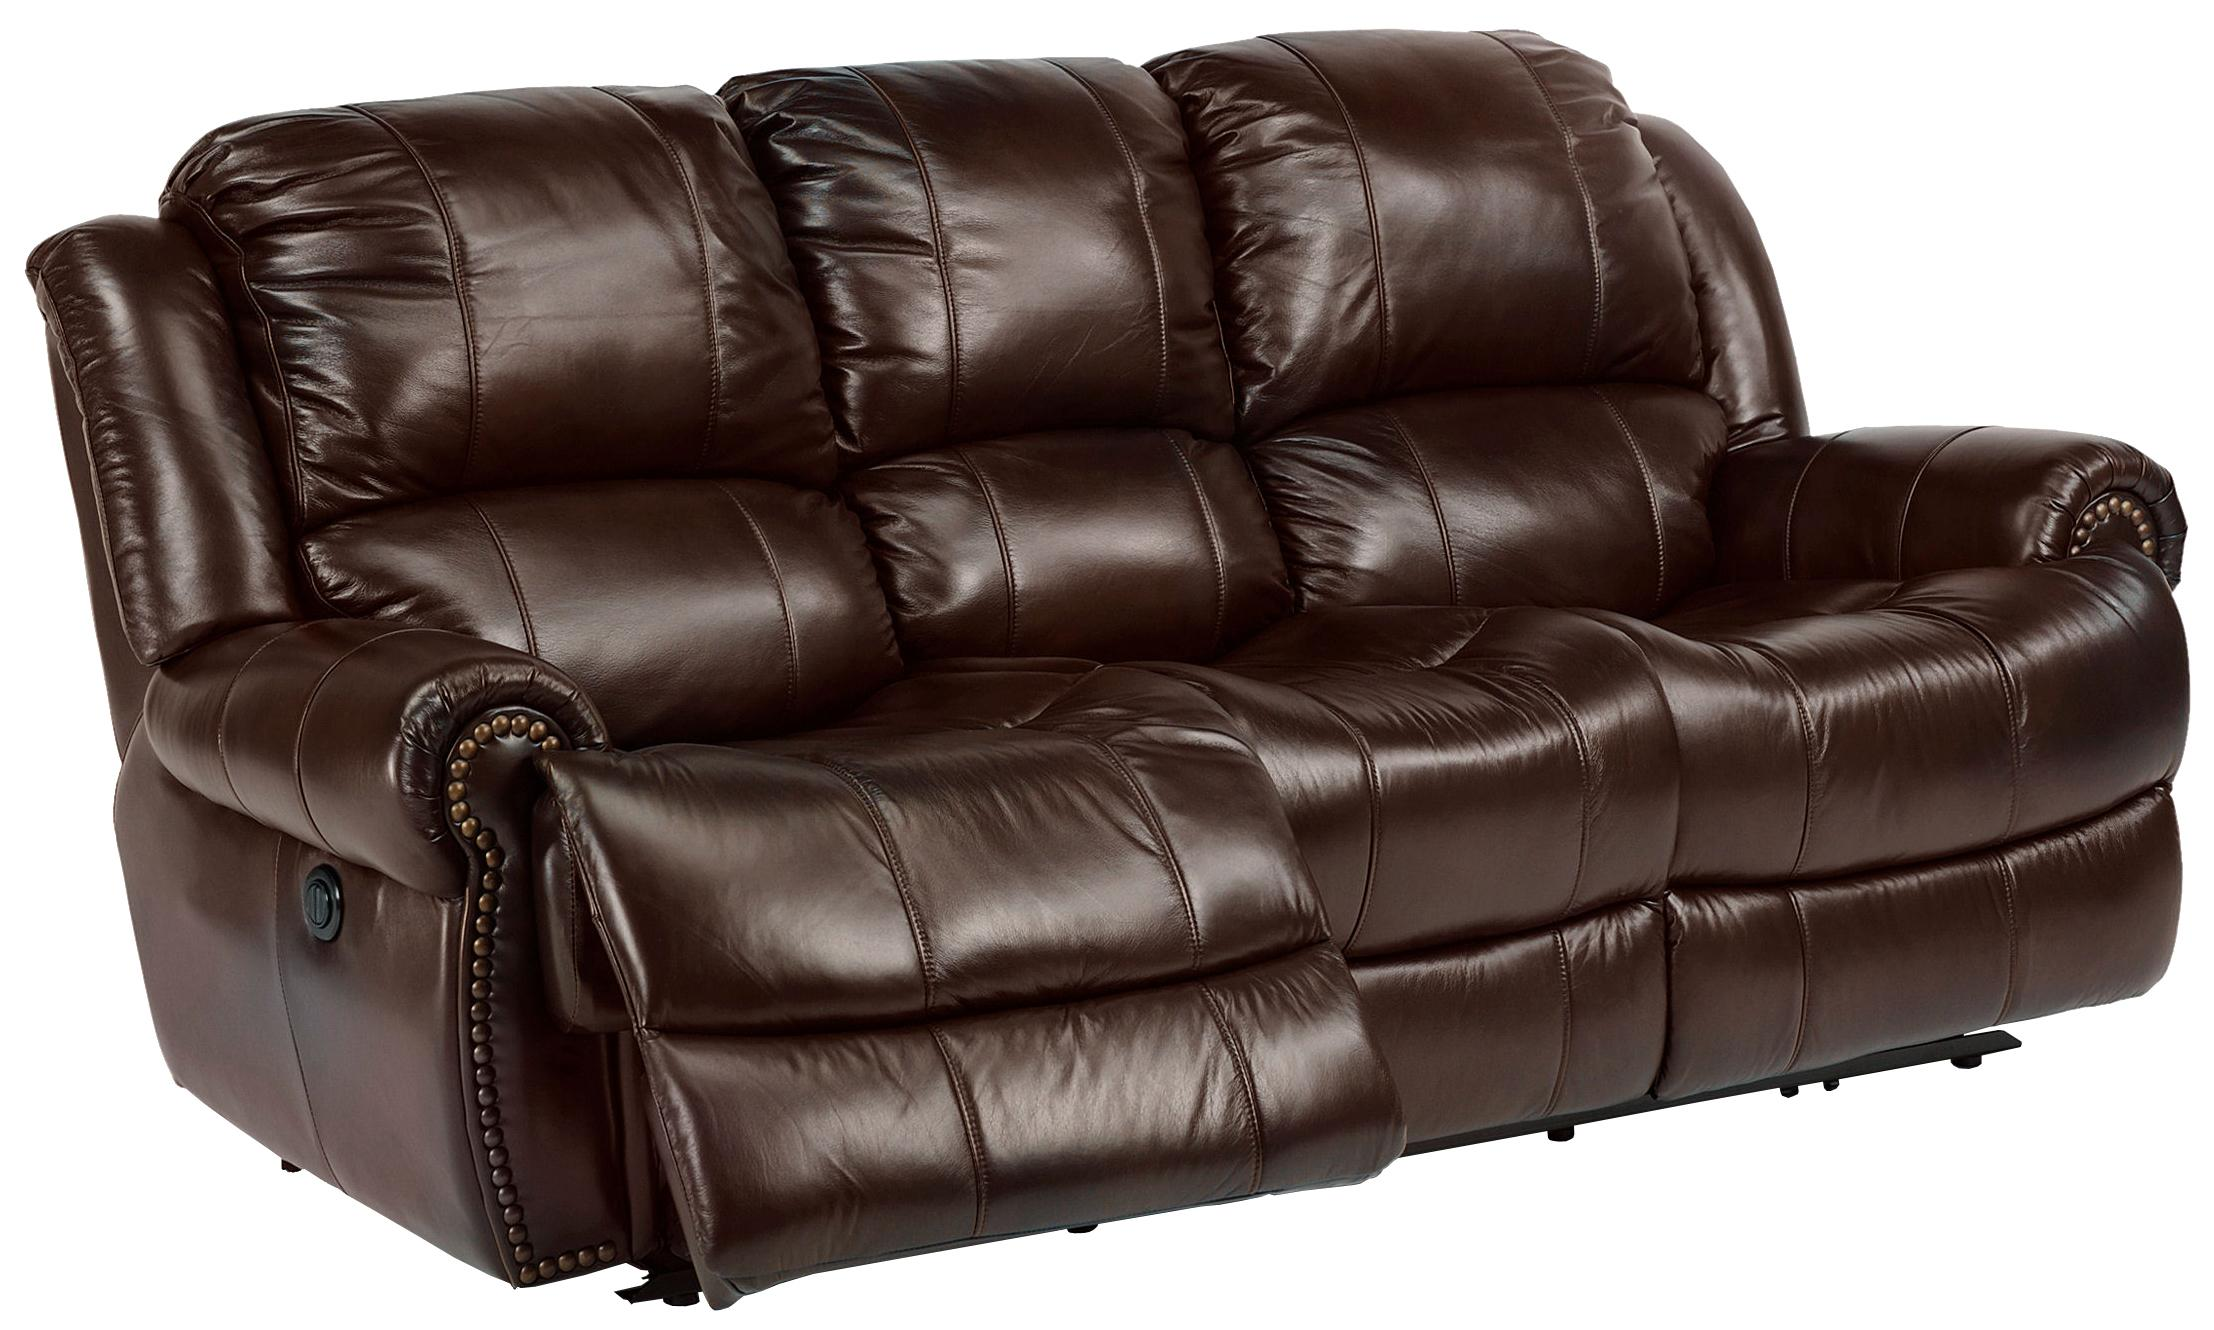 flexsteel recliner sofa how to make your old look new latitudes capitol power reclining with